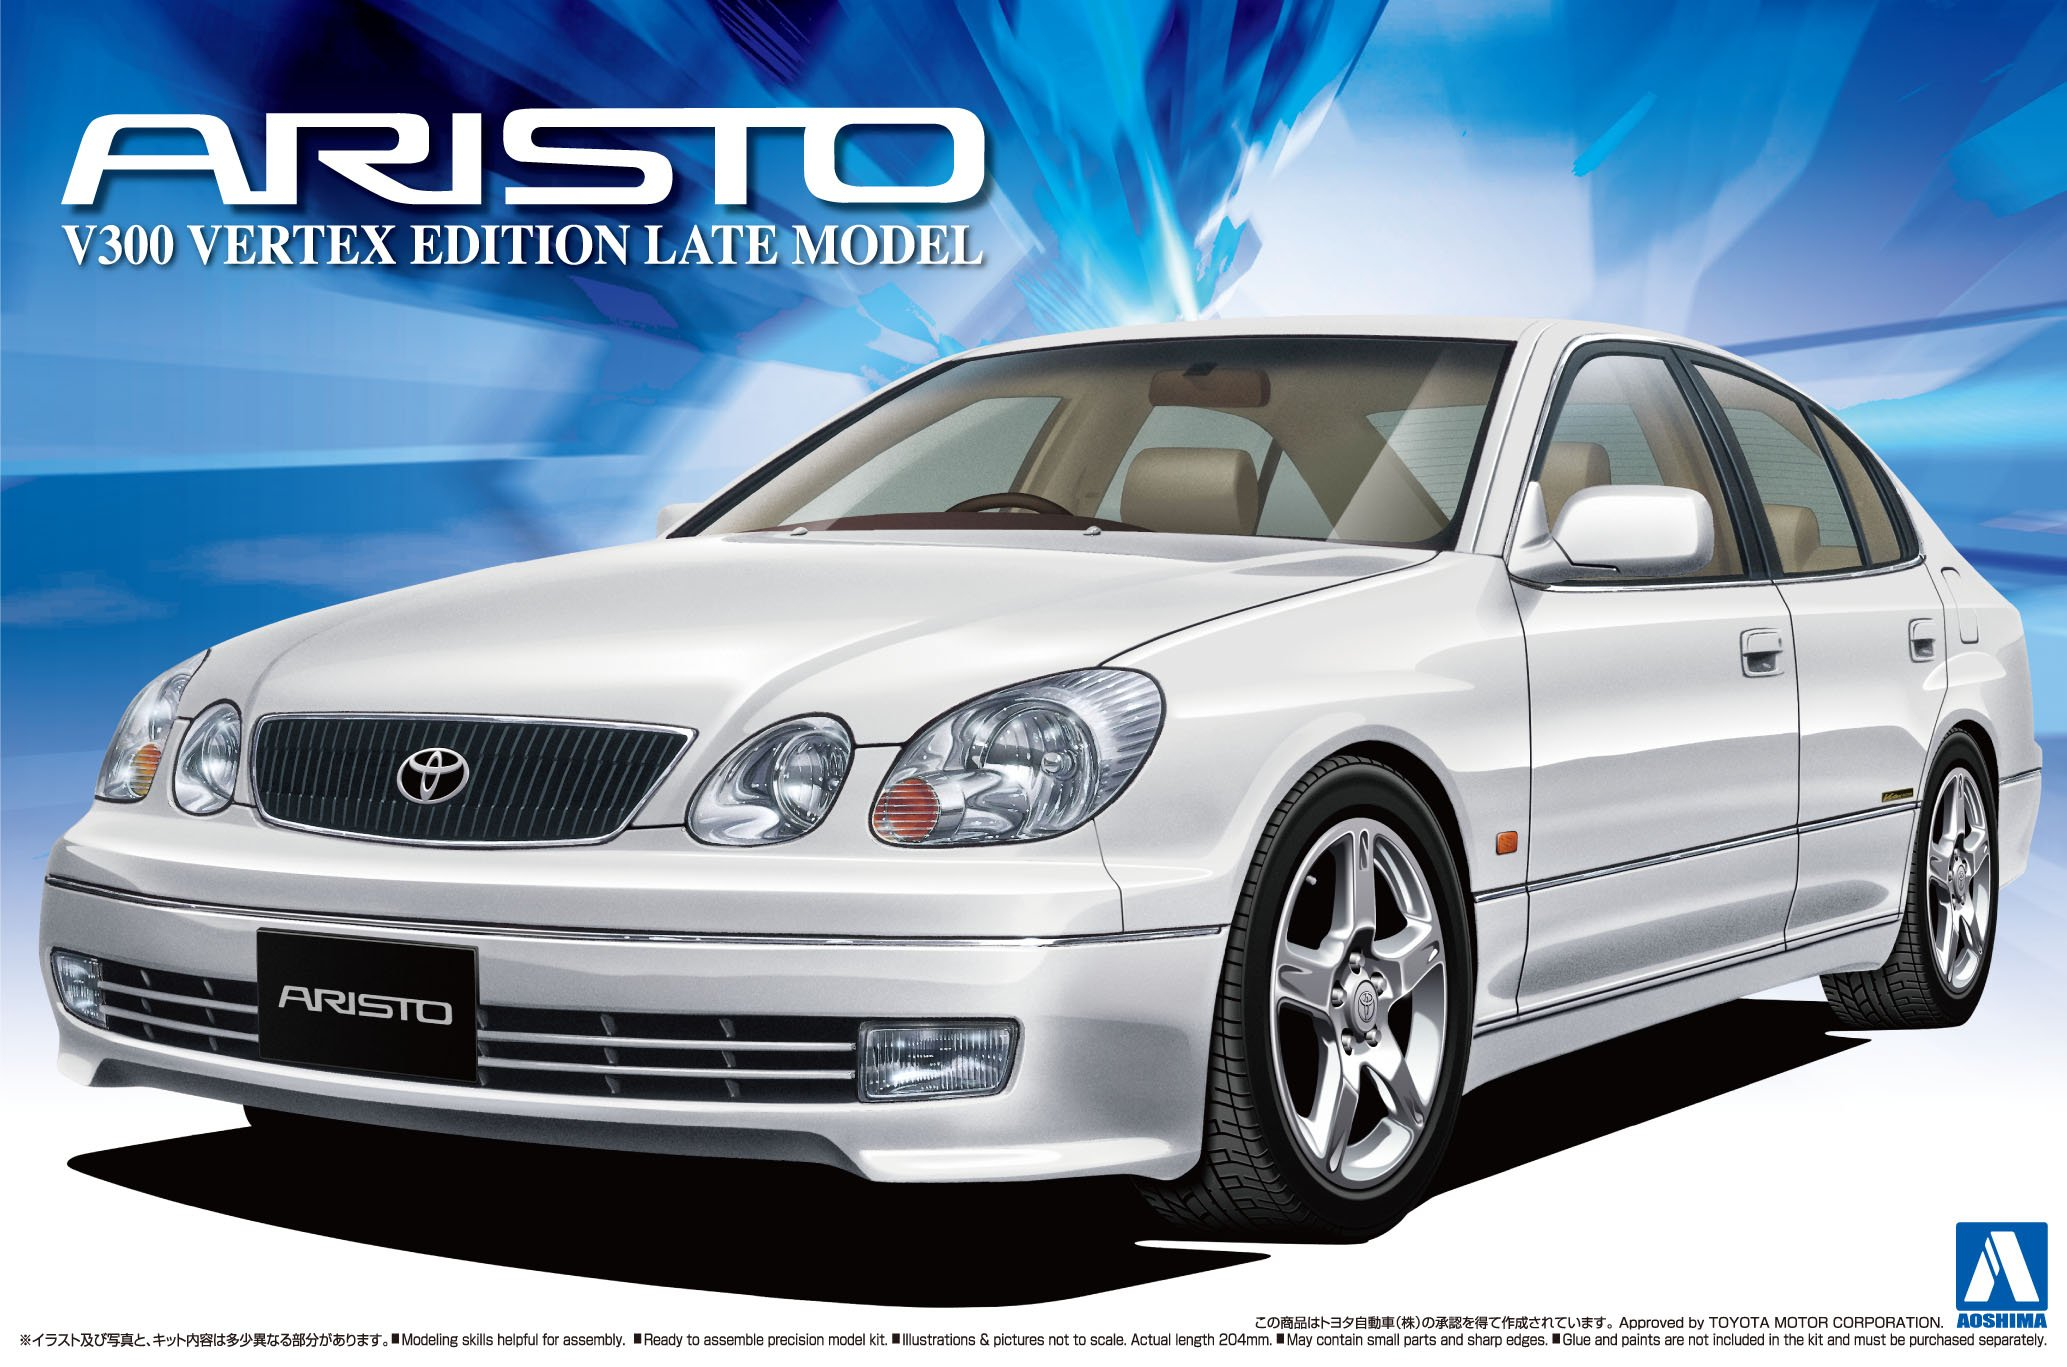 Qingdao Culture Teaching Materials Inc. 1/24 the best car GT series No.33 Toyota JZS161 aristo V300 Beltex edition late type